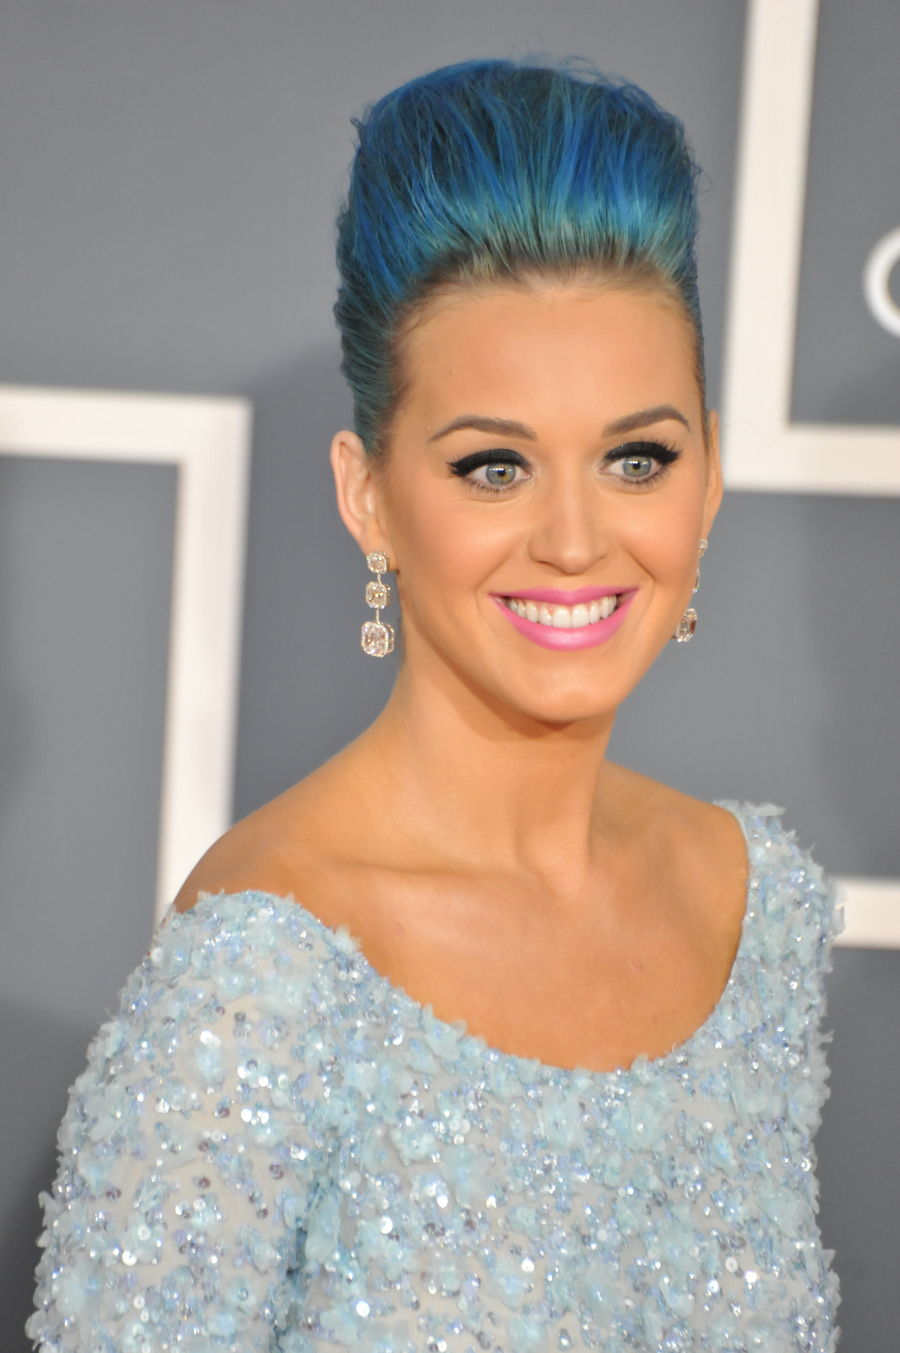 Singer Katy Perry arrives at the 54th Annual GRAMMY Awards held at the Staples Center. (Photo by Frank Trapper/Corbis via Getty Images)